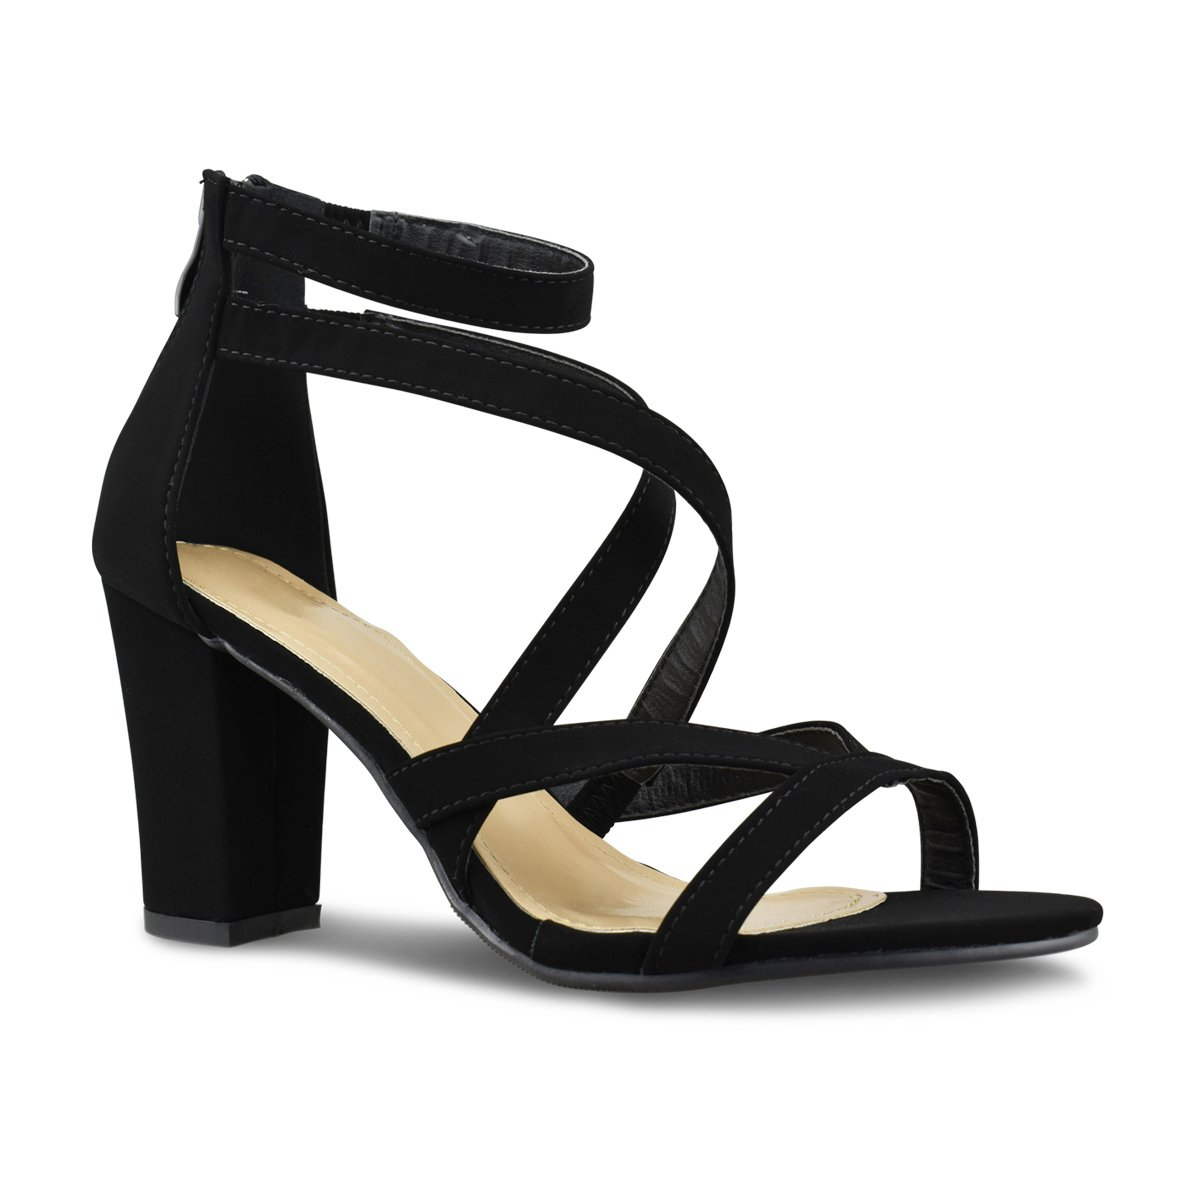 Premier Standard - Womens Strappy Open Toe High Chunky Heel - Sexy Stacked Heel Sandal - Cute Strappy Shoe, TPS Heels-H66 Black Size 10